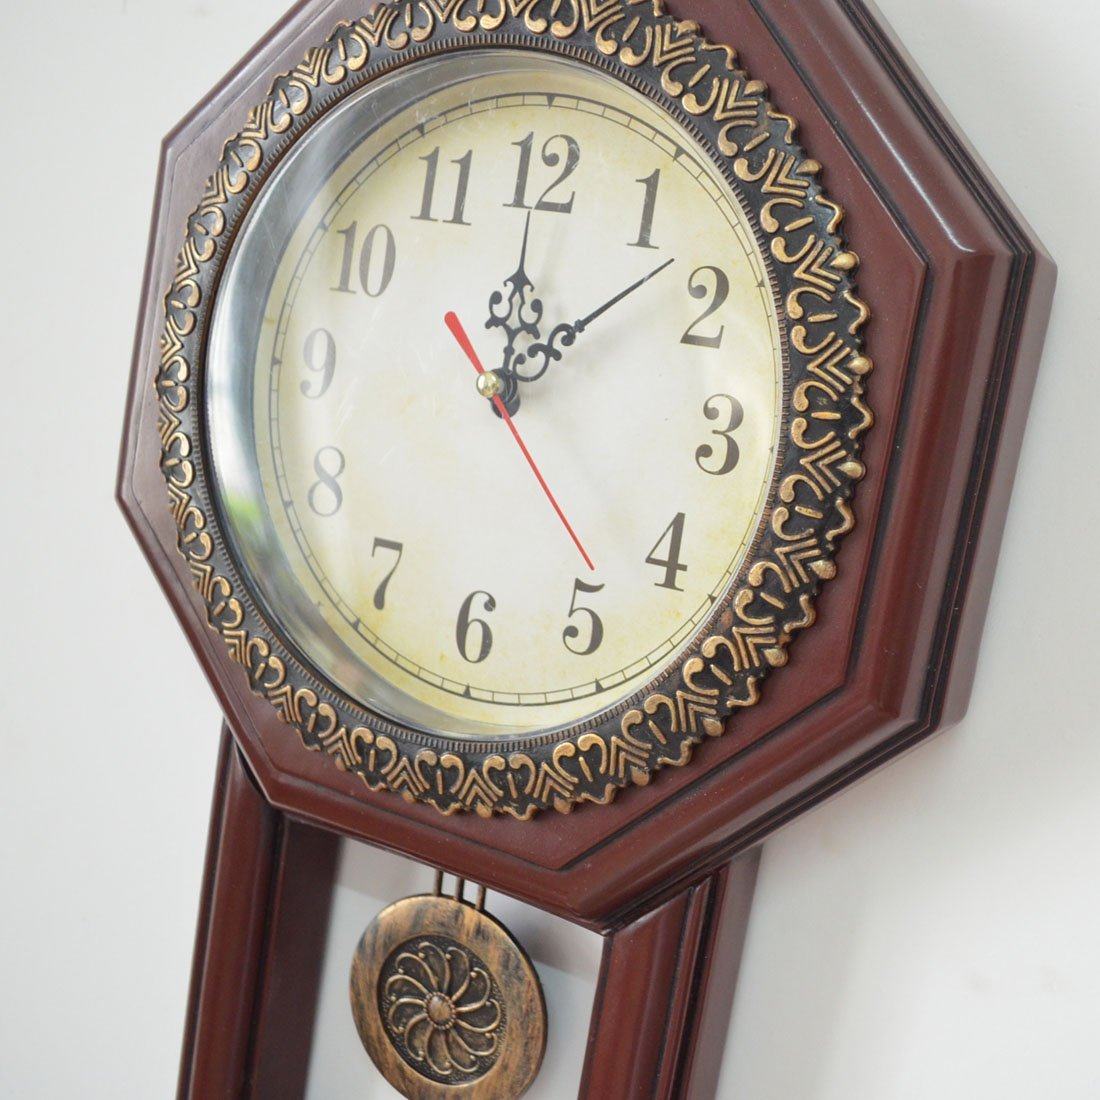 Giftgarden Housewarming Vintage Wall Clock Imitation Wood Color for Bedroom Decor 6